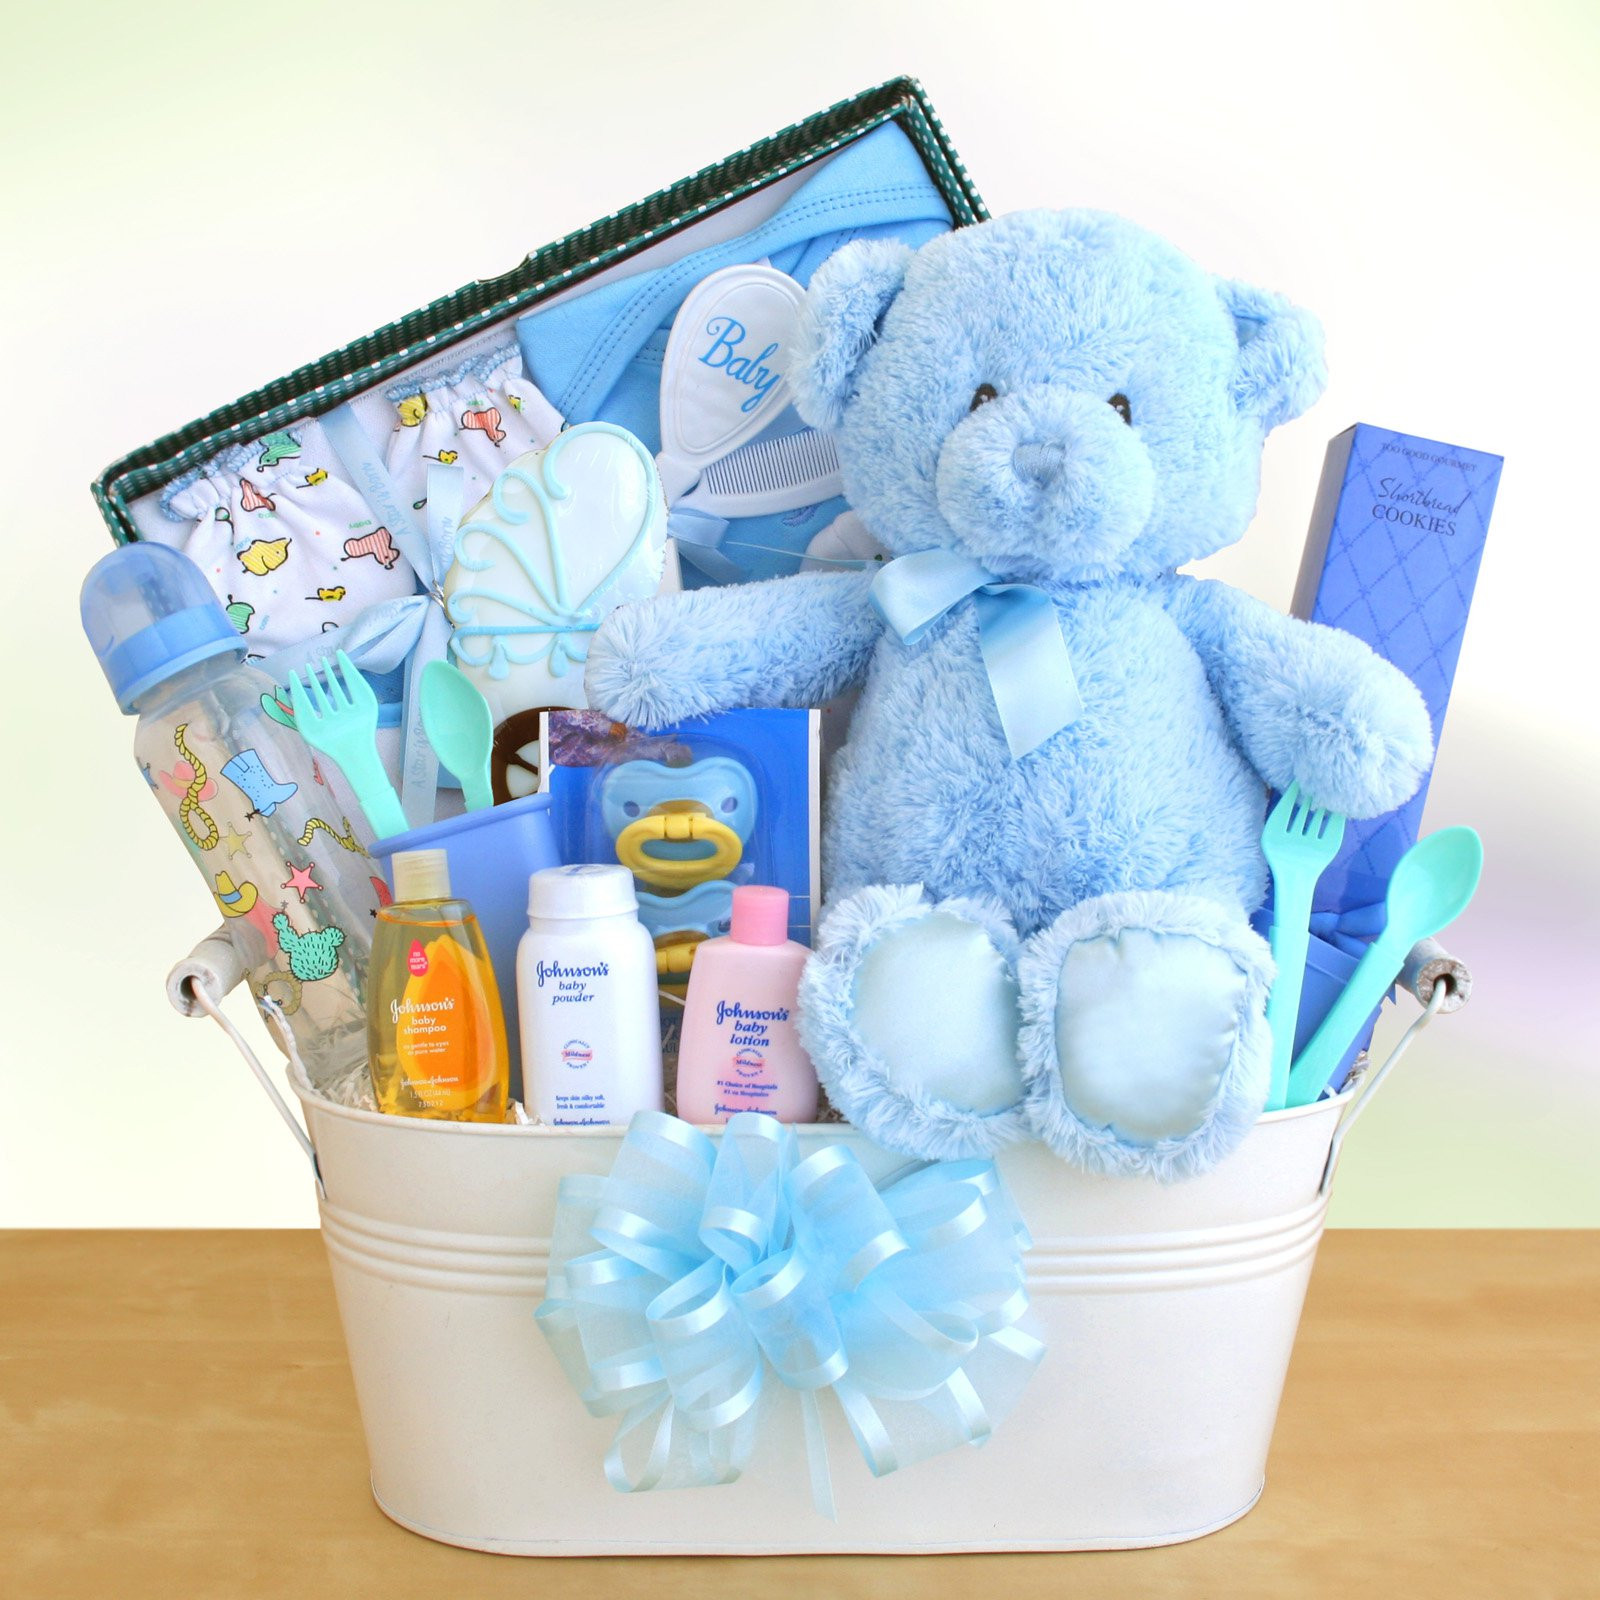 Best ideas about Baby Boy Gift Ideas . Save or Pin New Arrival Baby Boy Gift Basket Gift Baskets by Now.